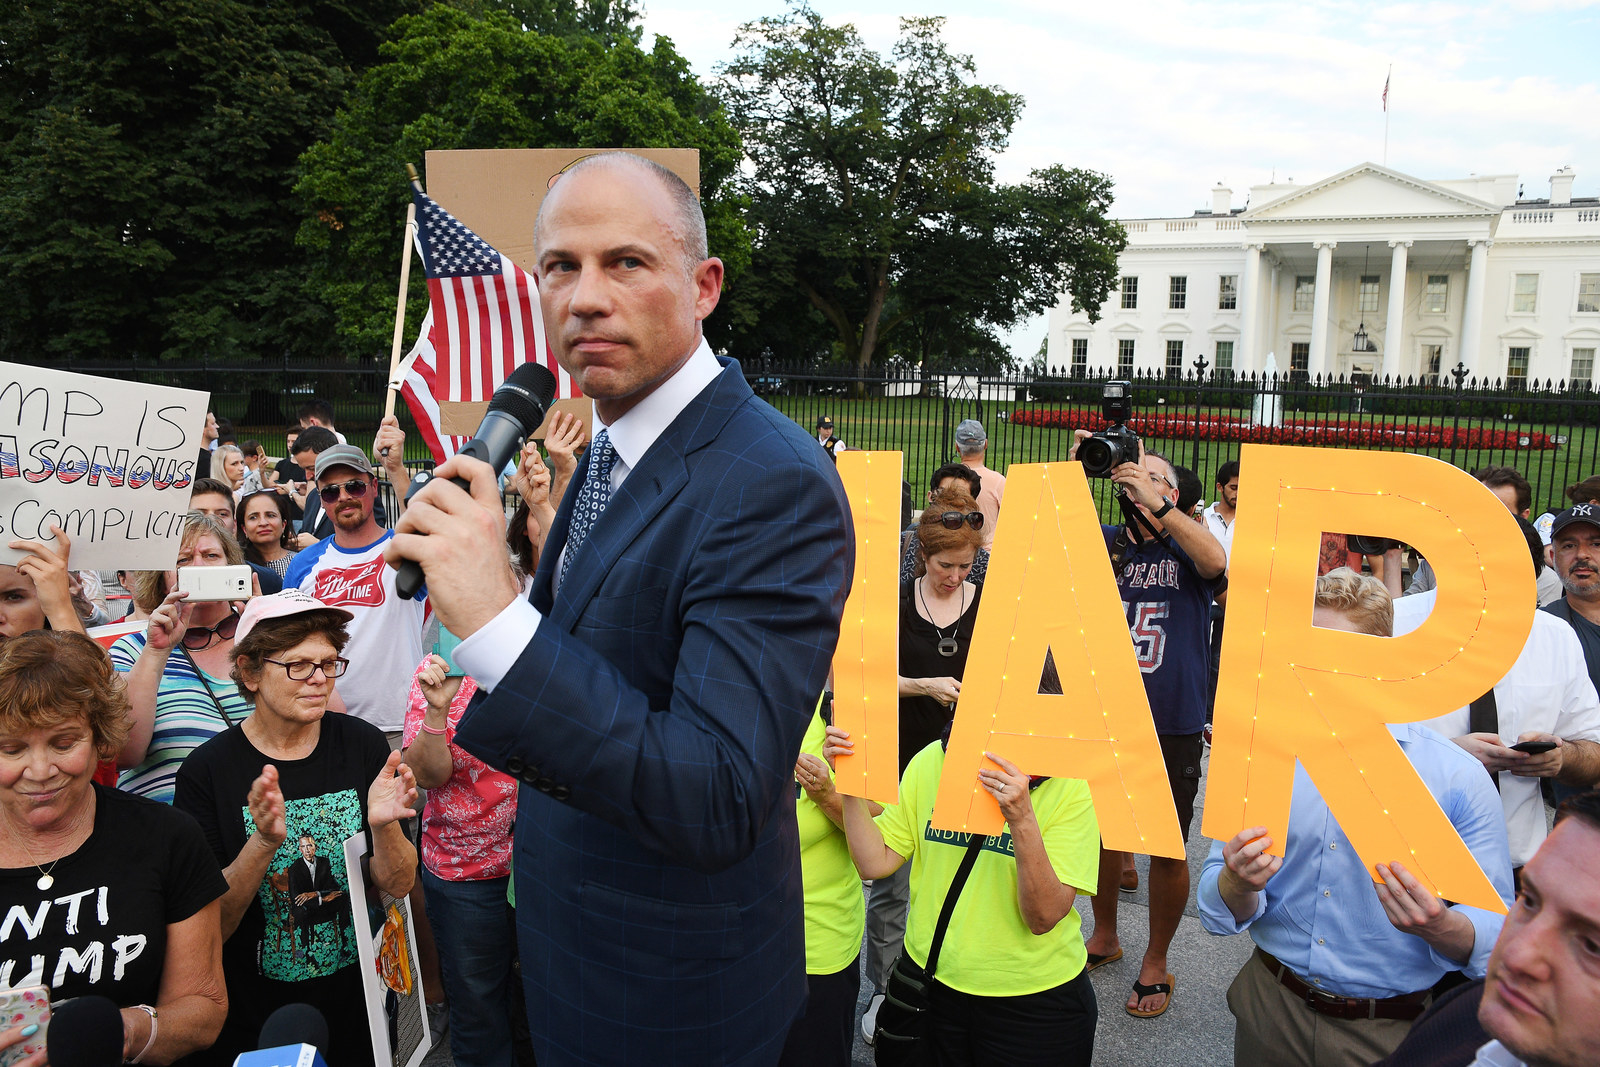 Washington Democrats Think Michael Avenatti Is A Nuisance. He Thinks They're Out To Get Him.